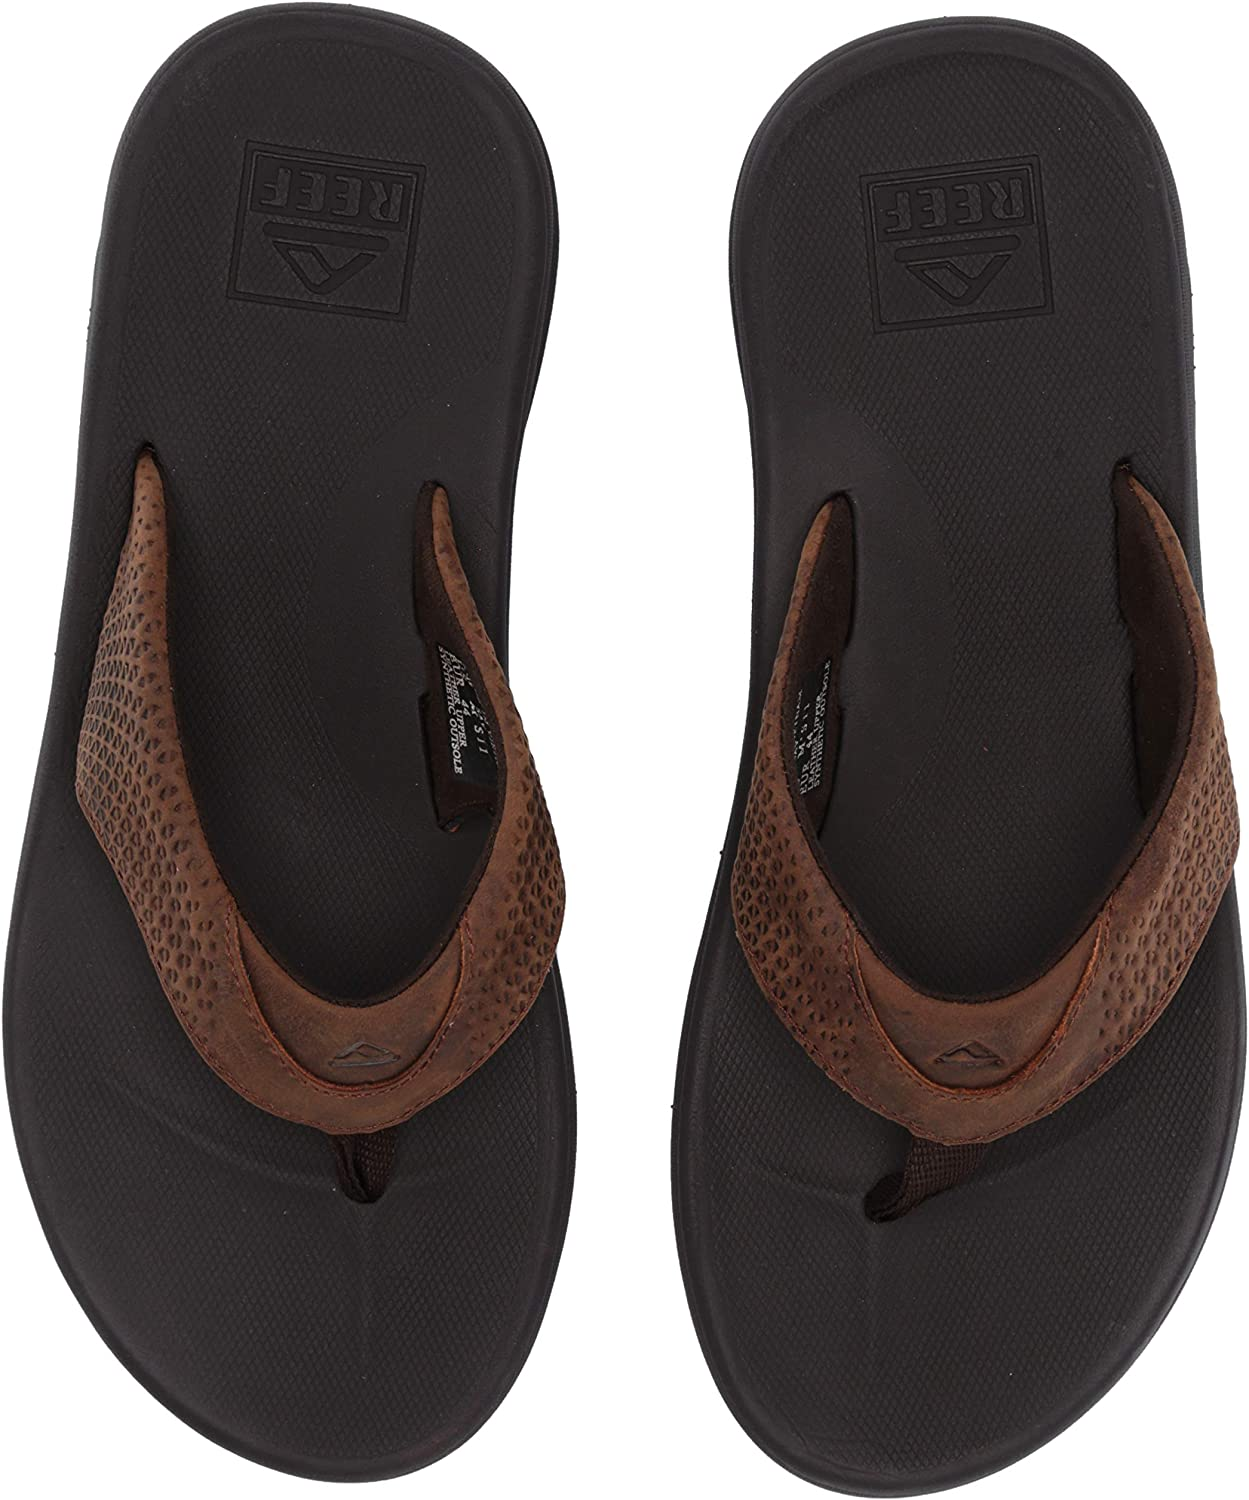 Reef Womens Rover Le Sandal